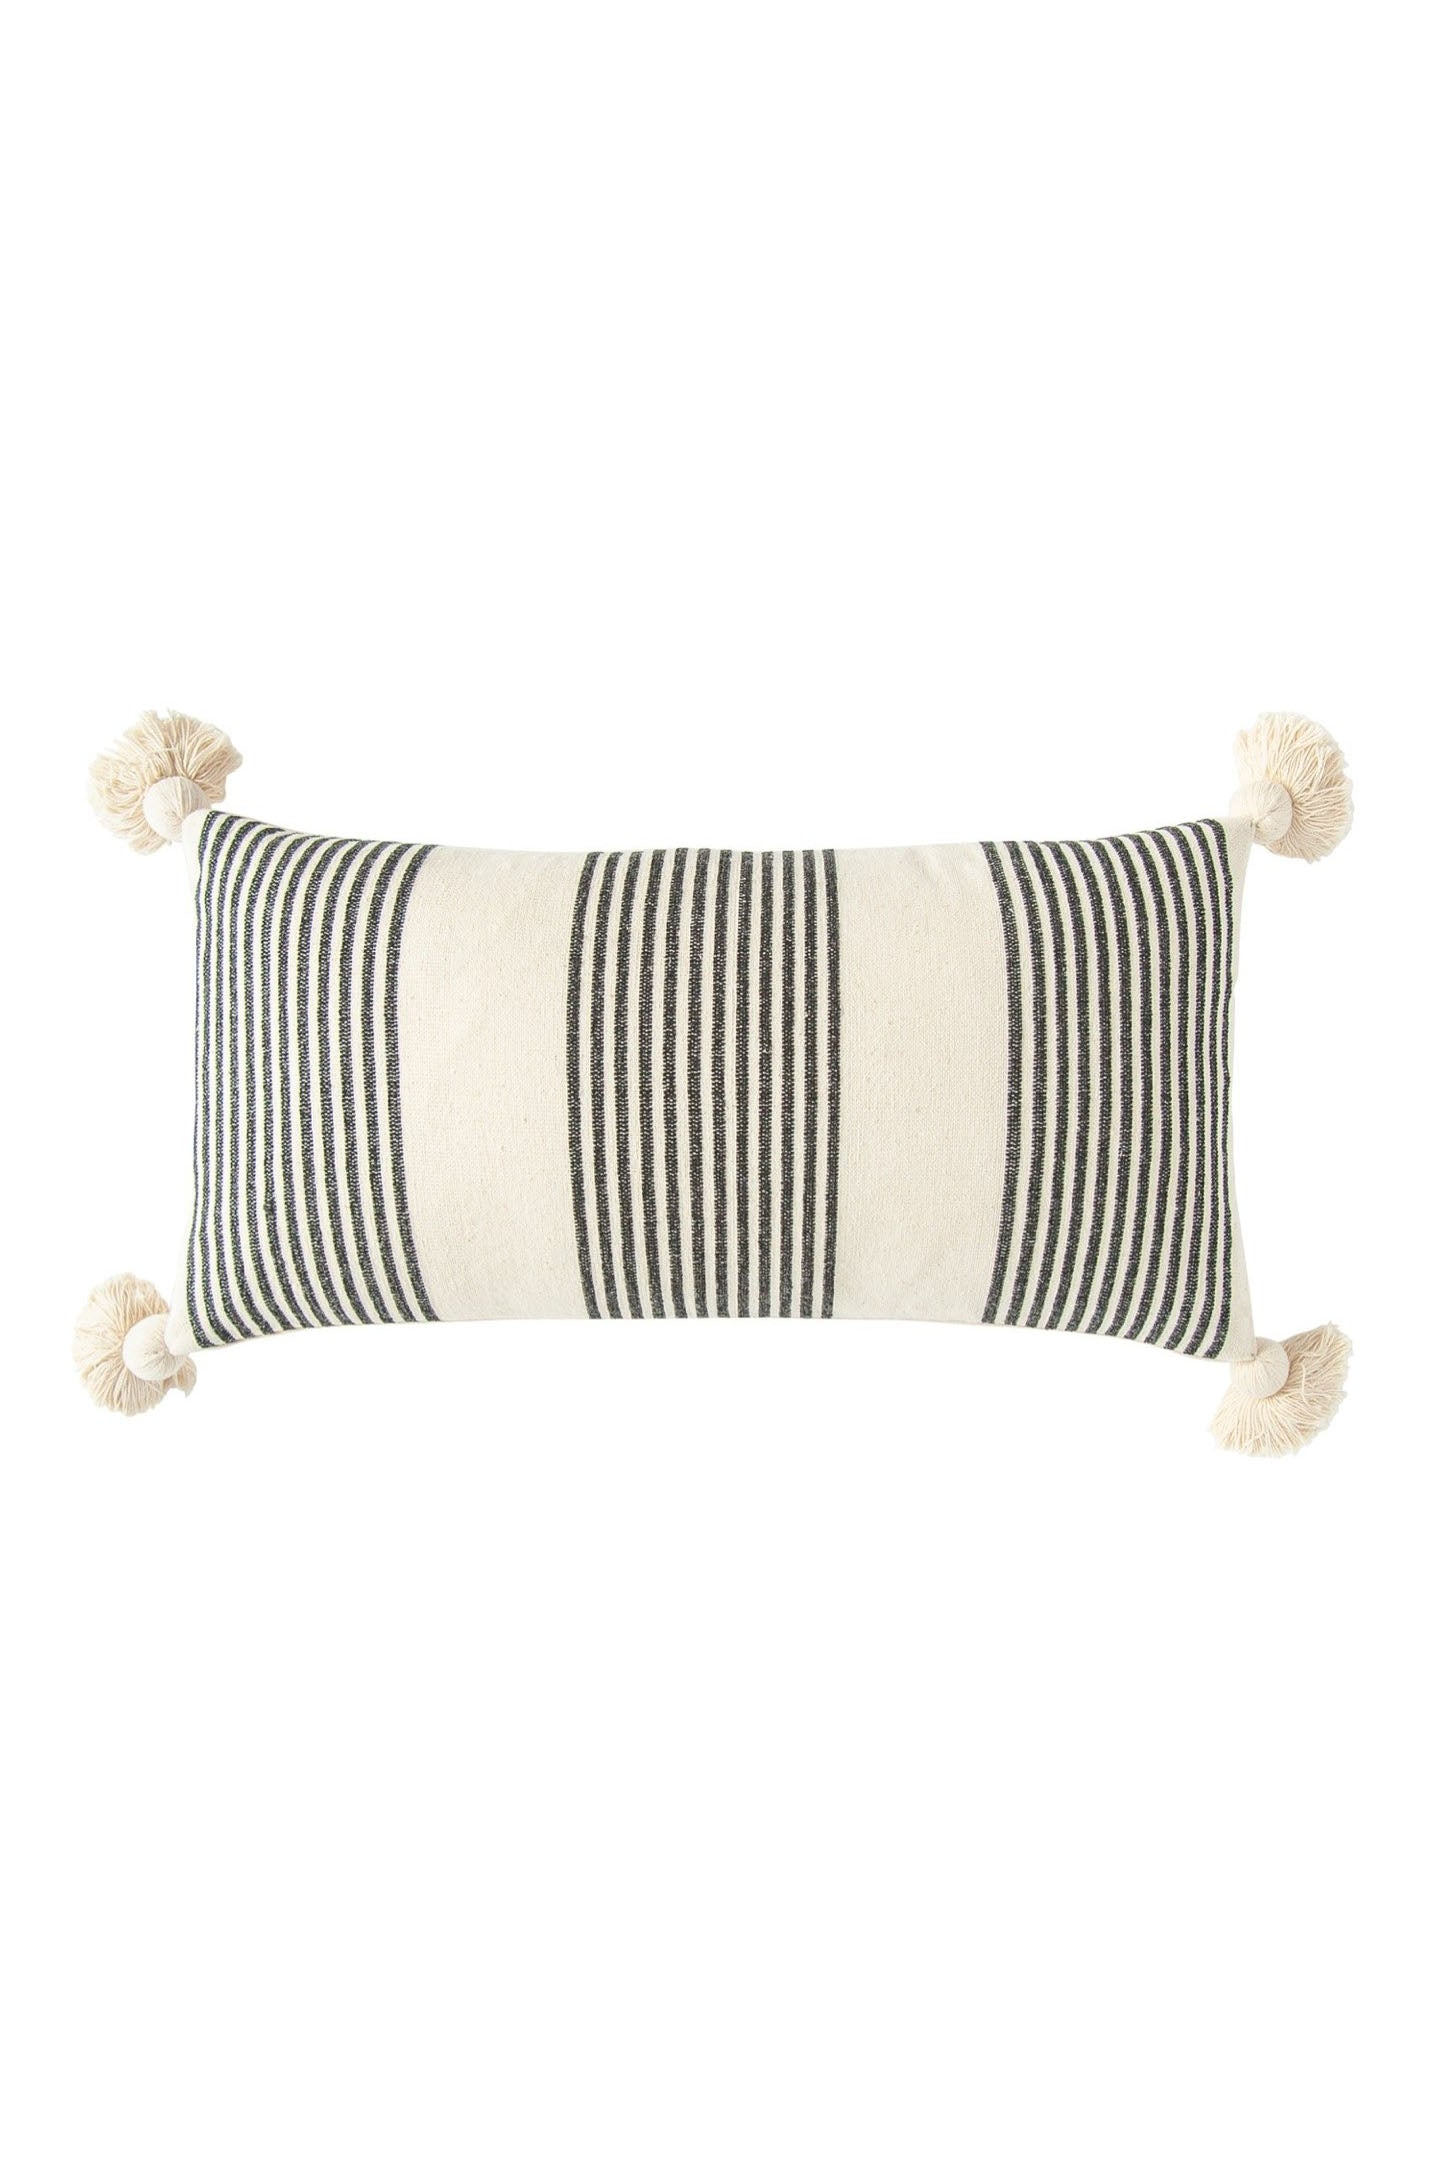 Perry Striped Lumbar Pillow Black And White Cove Goods